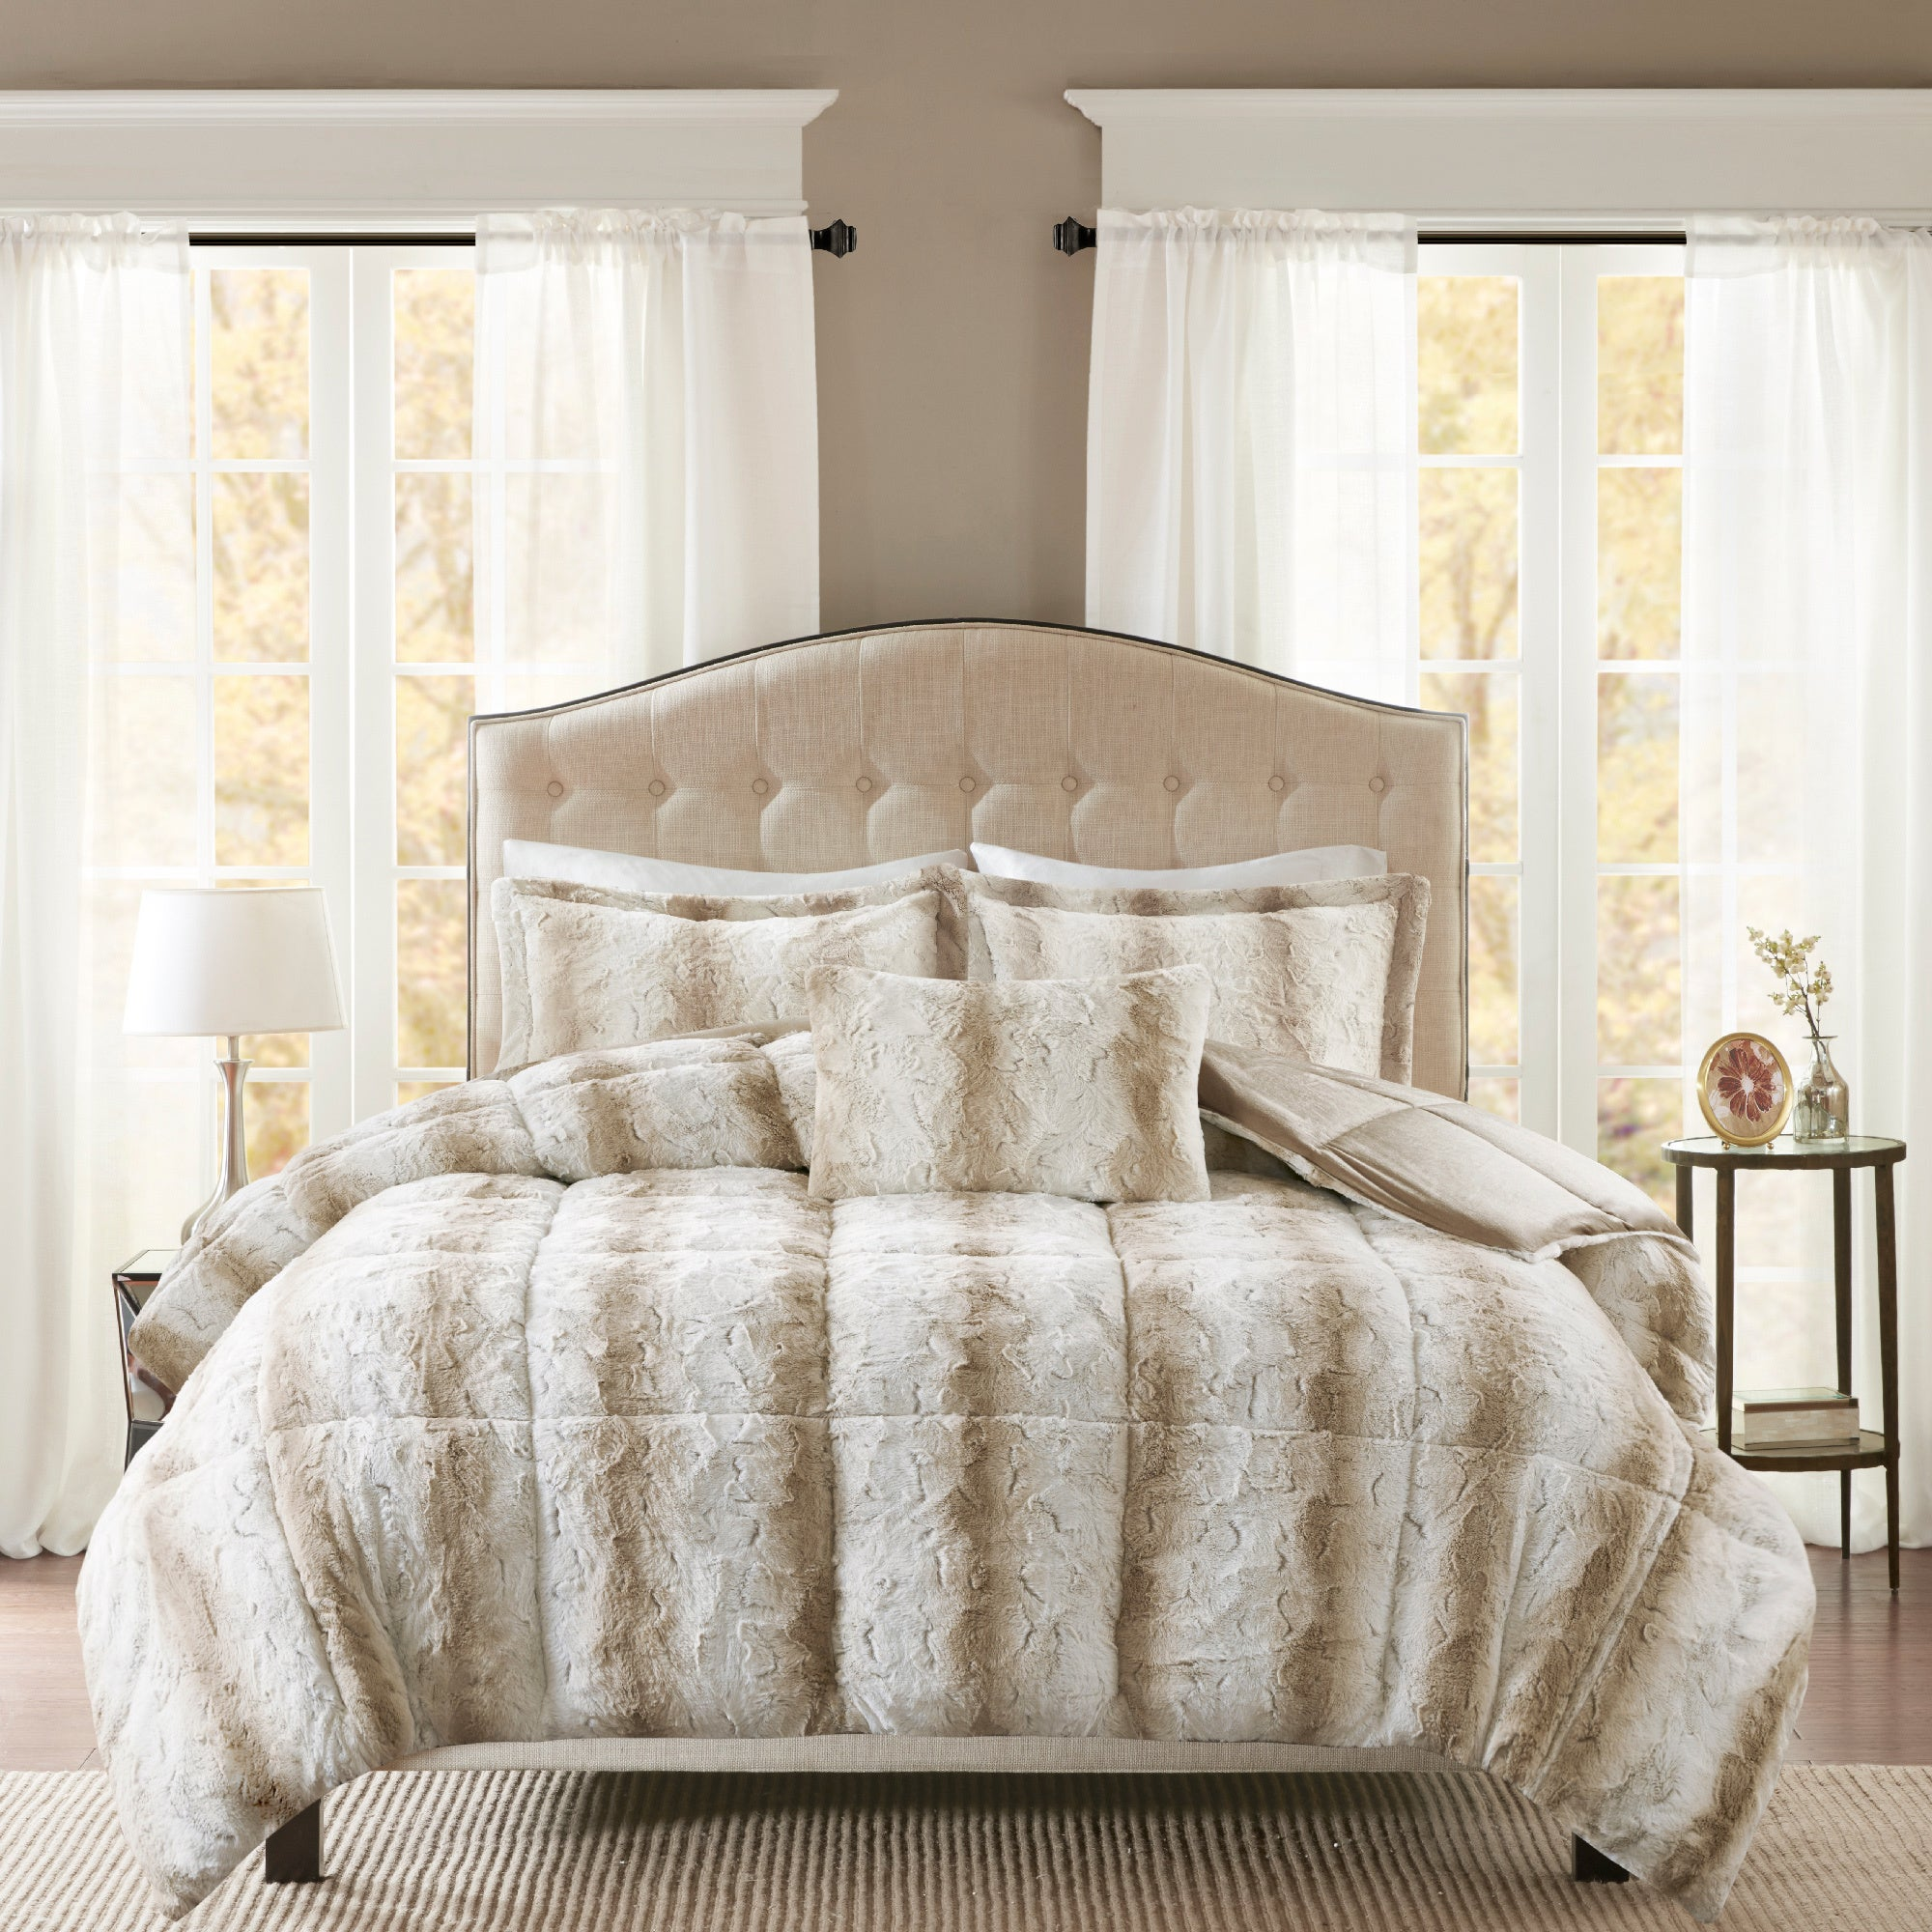 queen find line reversible shopping deals guides comforter get on at fake luxury siriano fur christian cheap quotations faux